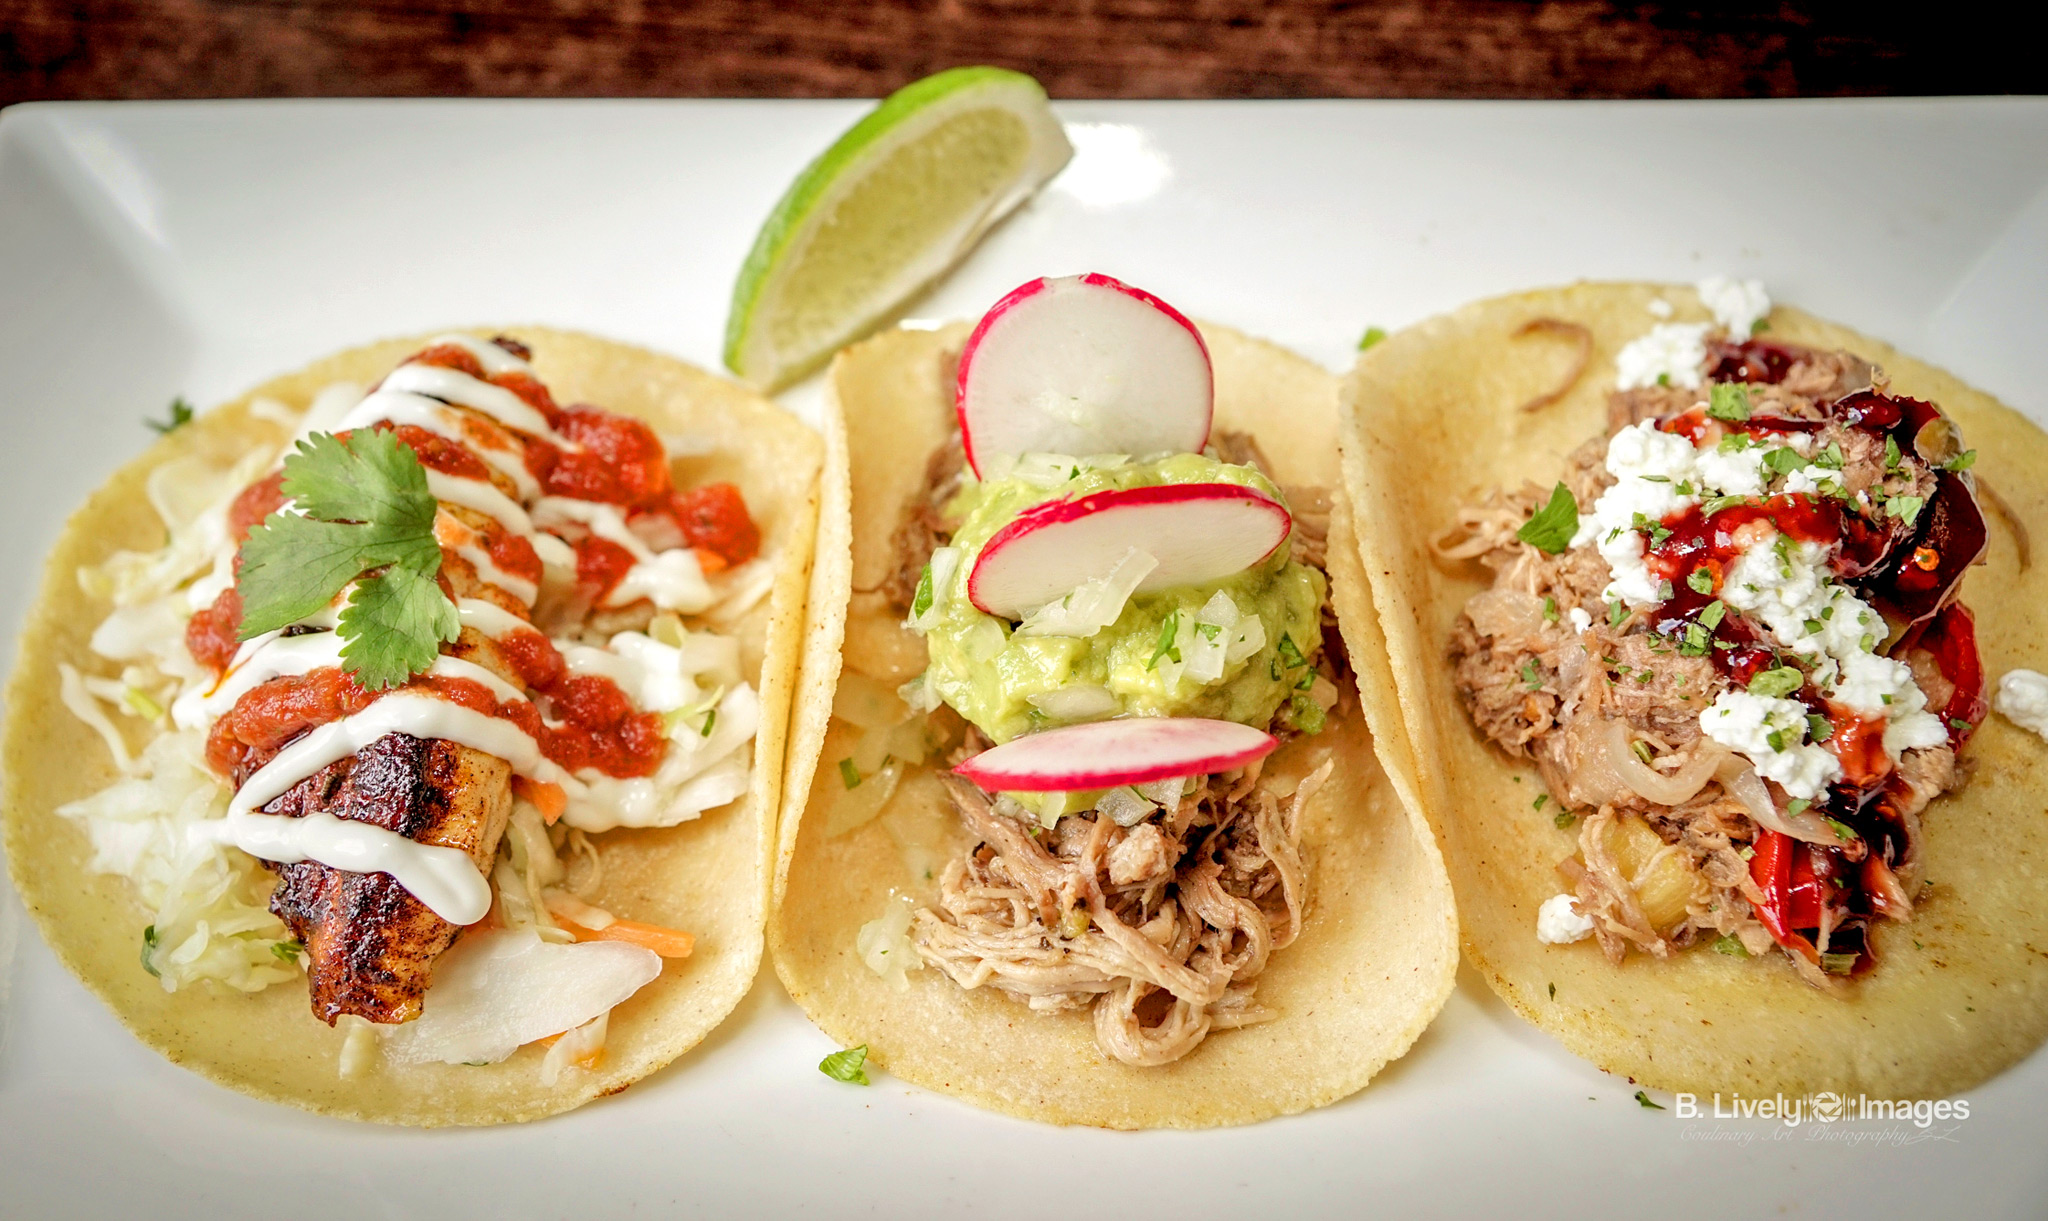 @stpetefoodies's cover photo for '10 Best Mexican Restaurants in St. Petersburg FL 2018'